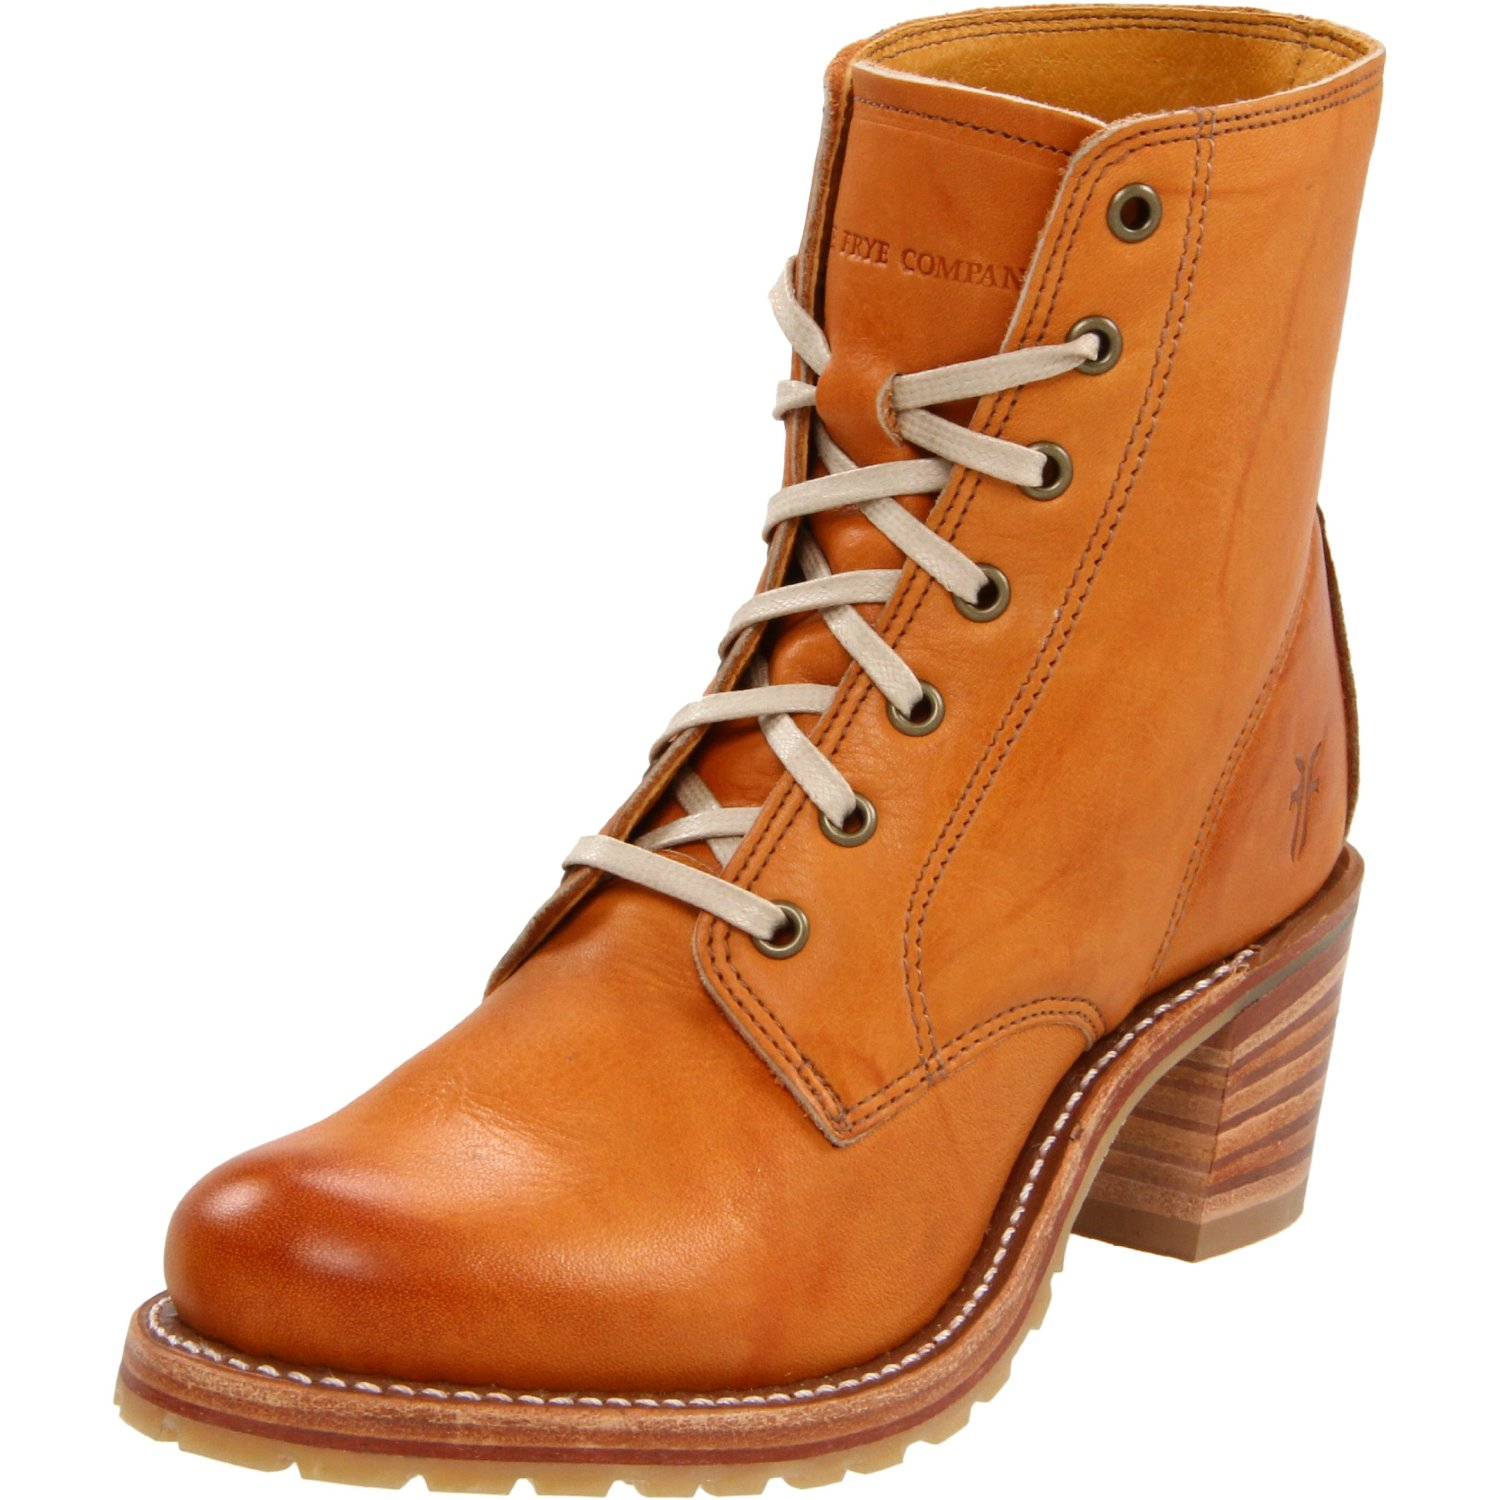 Popular Frye Women39s Shoes Campus Lug Lace Up Boots  Polyvore